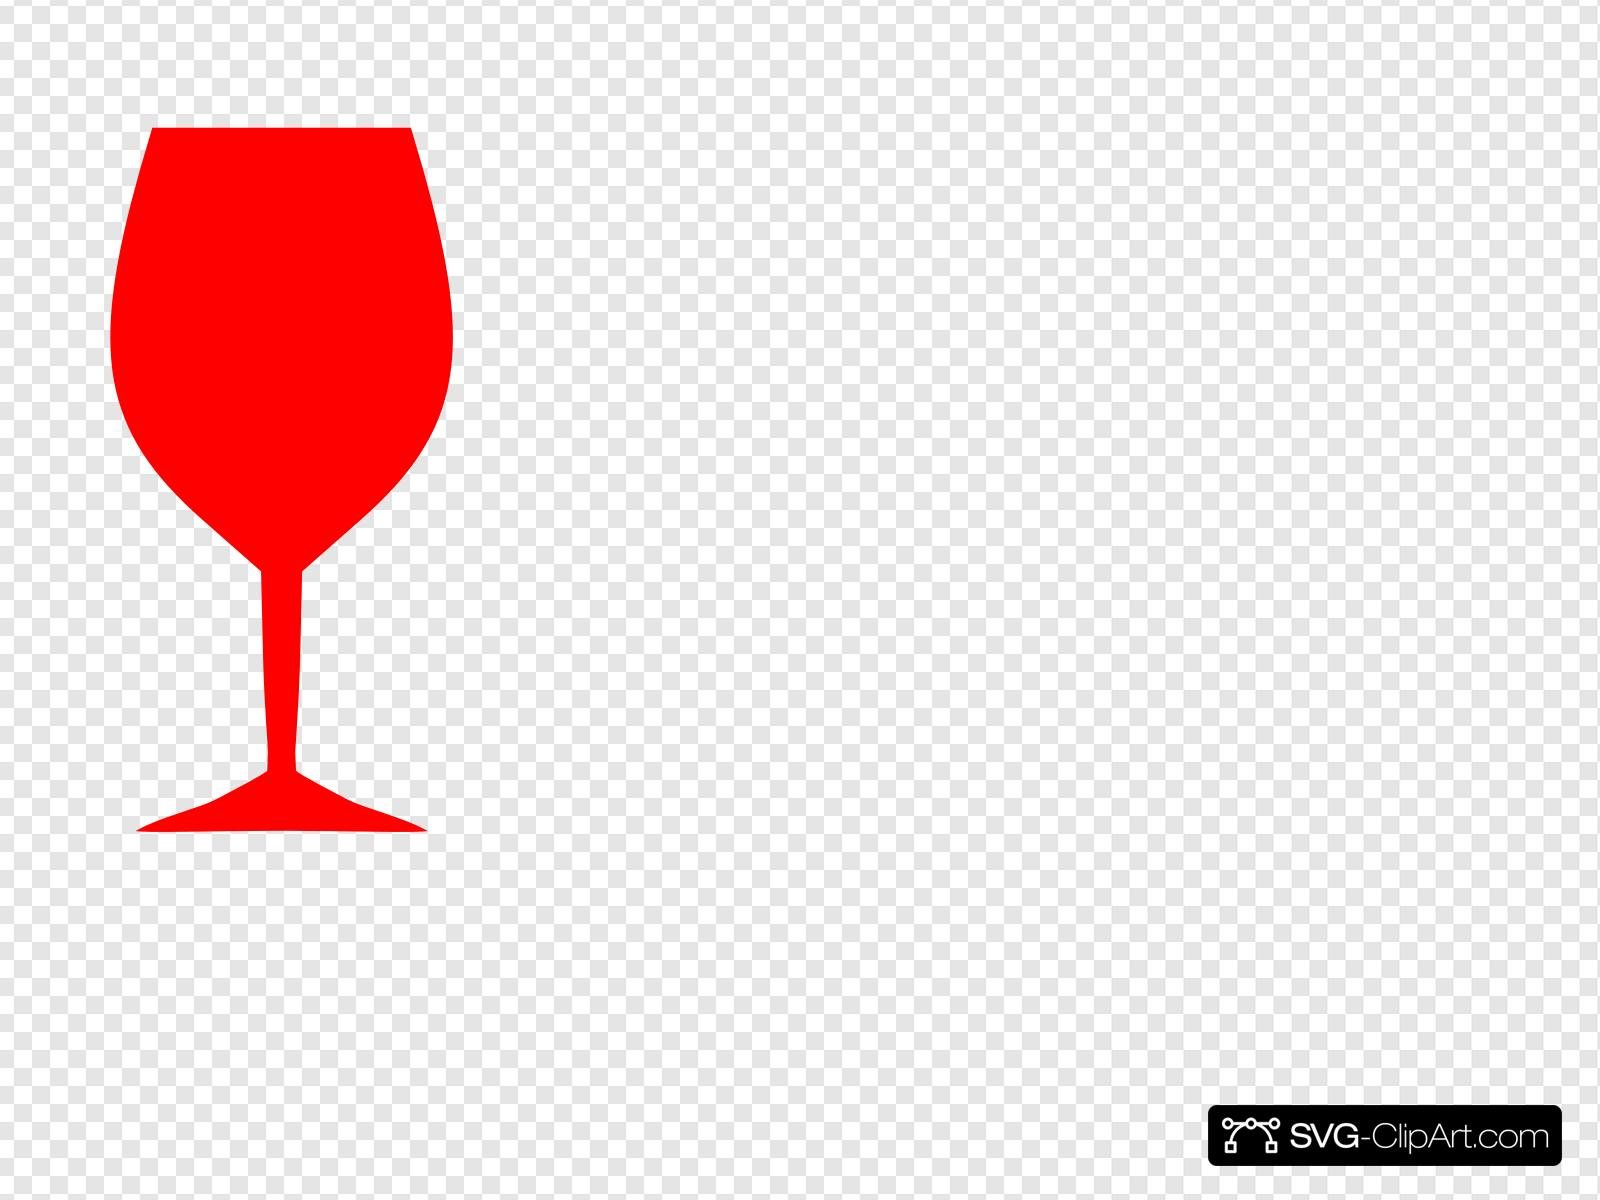 Red Wine Glass Clip art, Icon and SVG.